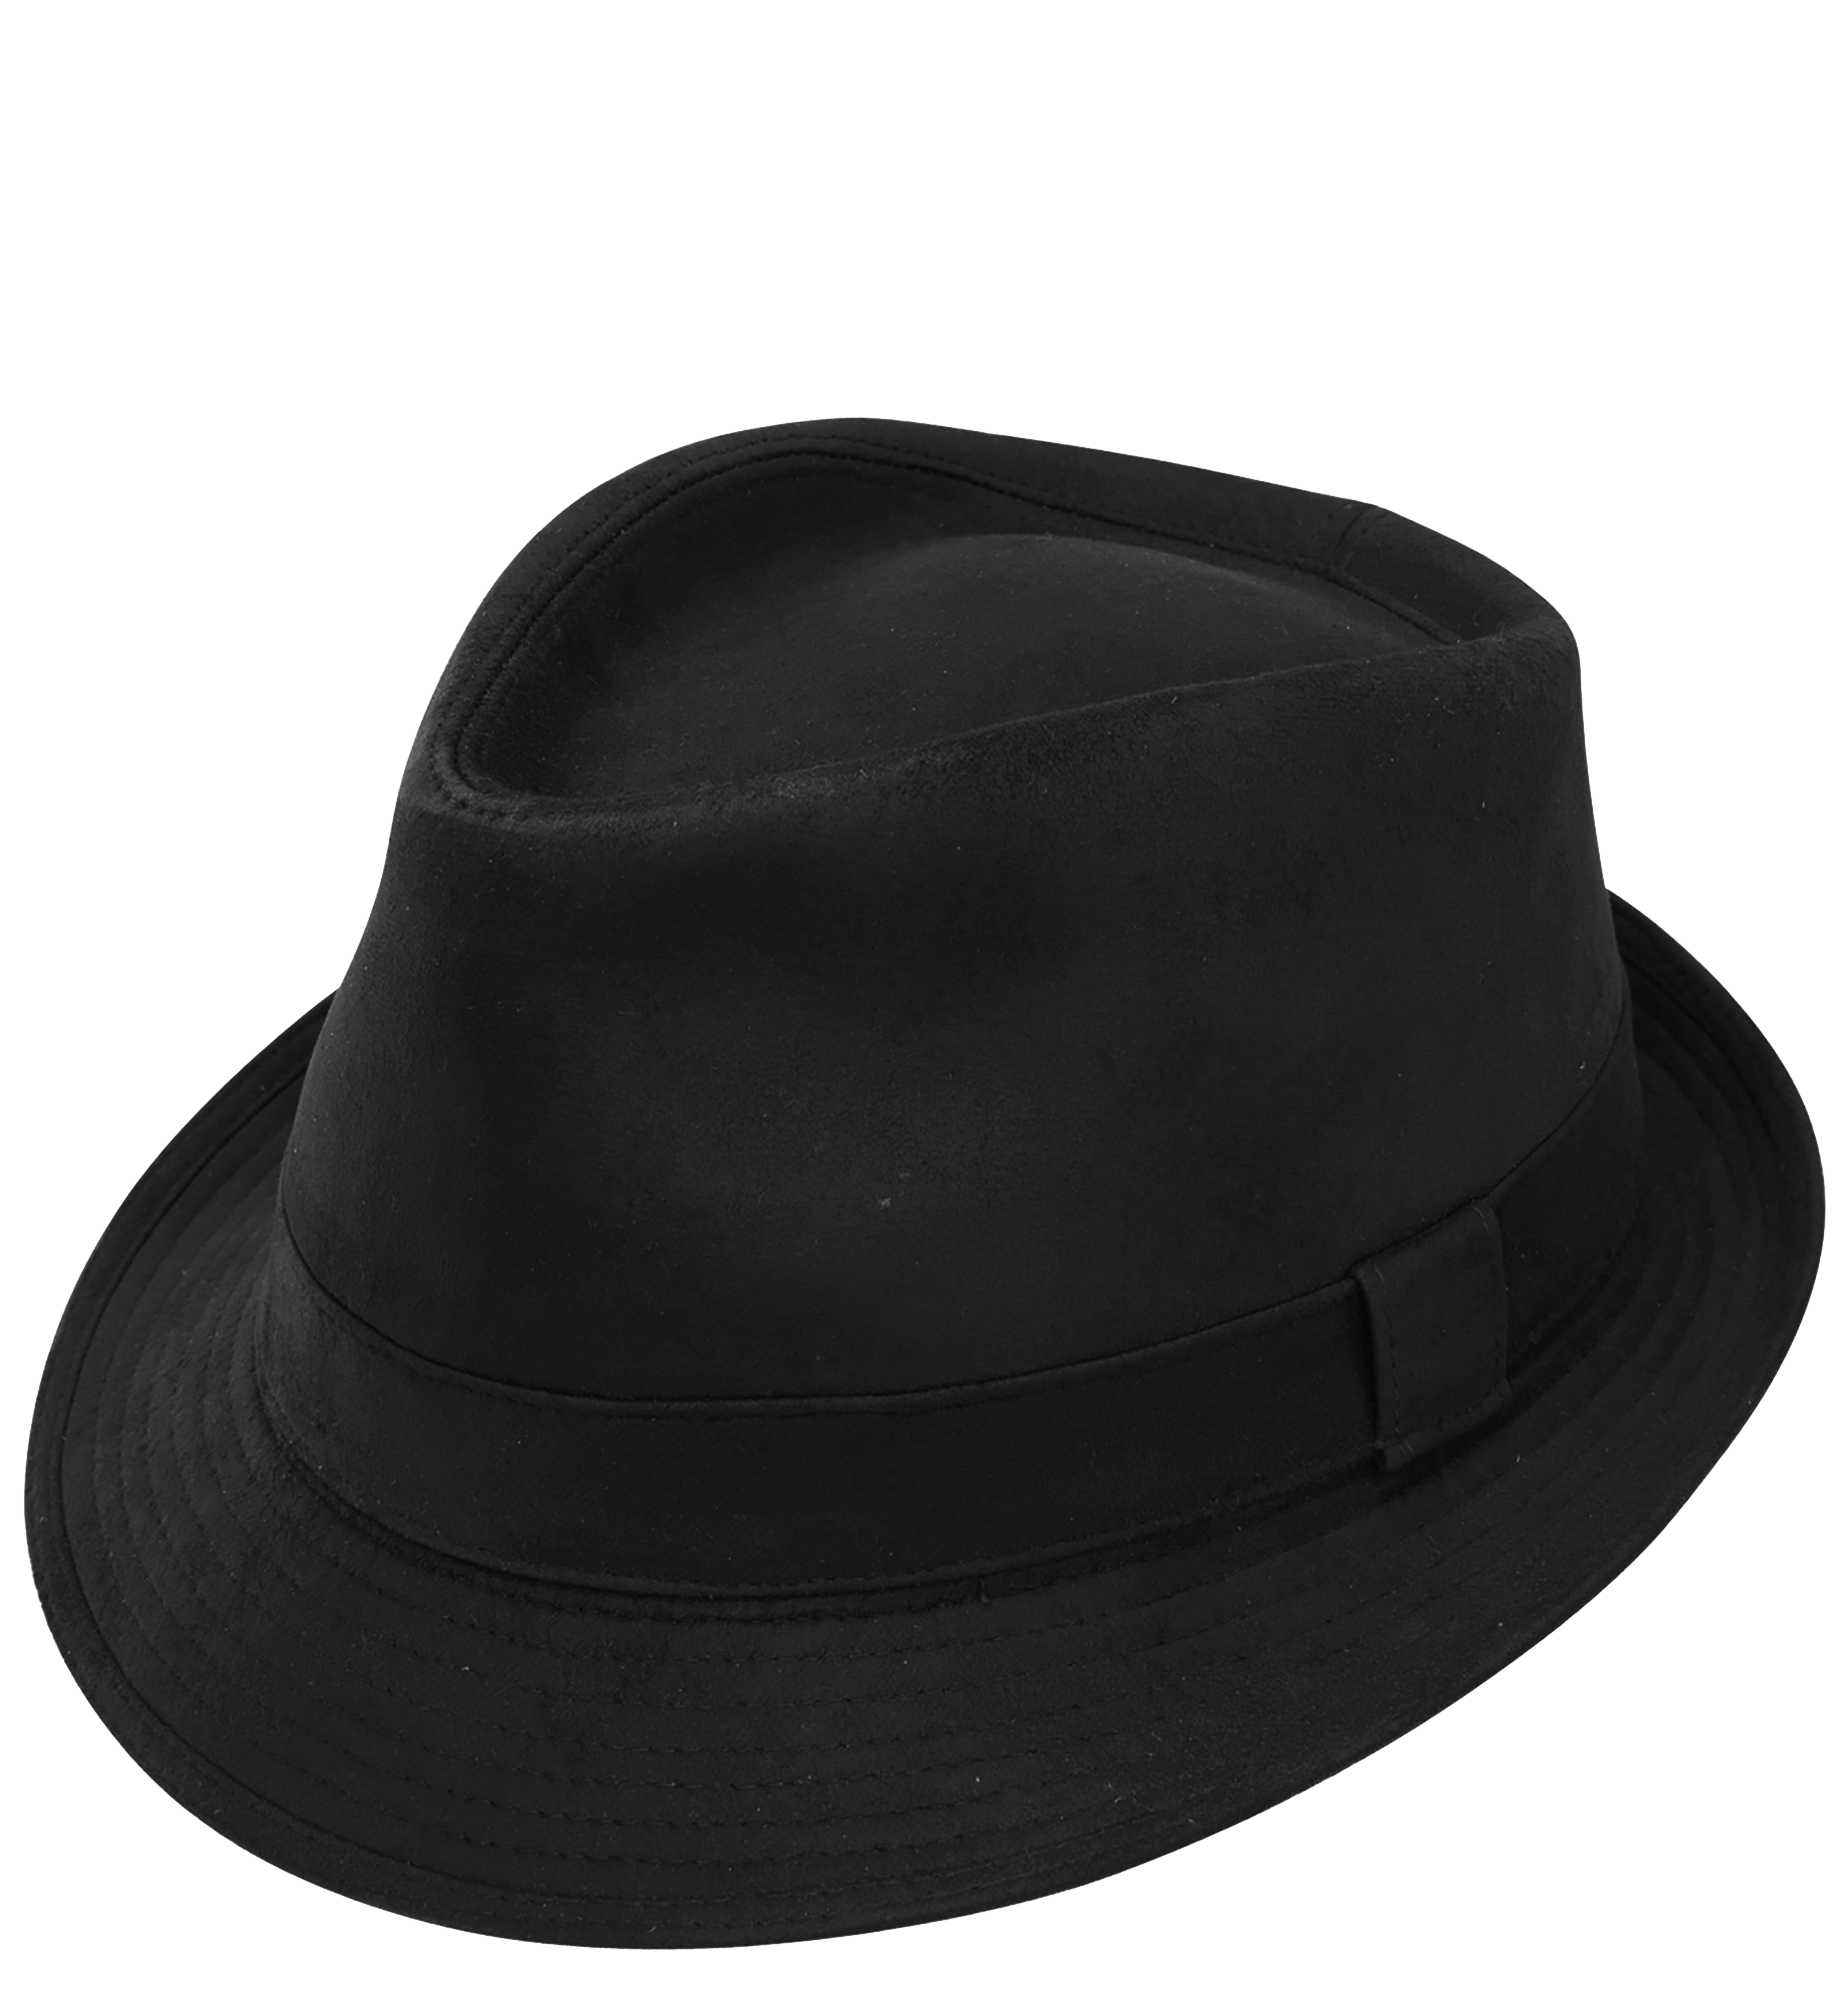 Picture of a fedora clipart images gallery for free download.